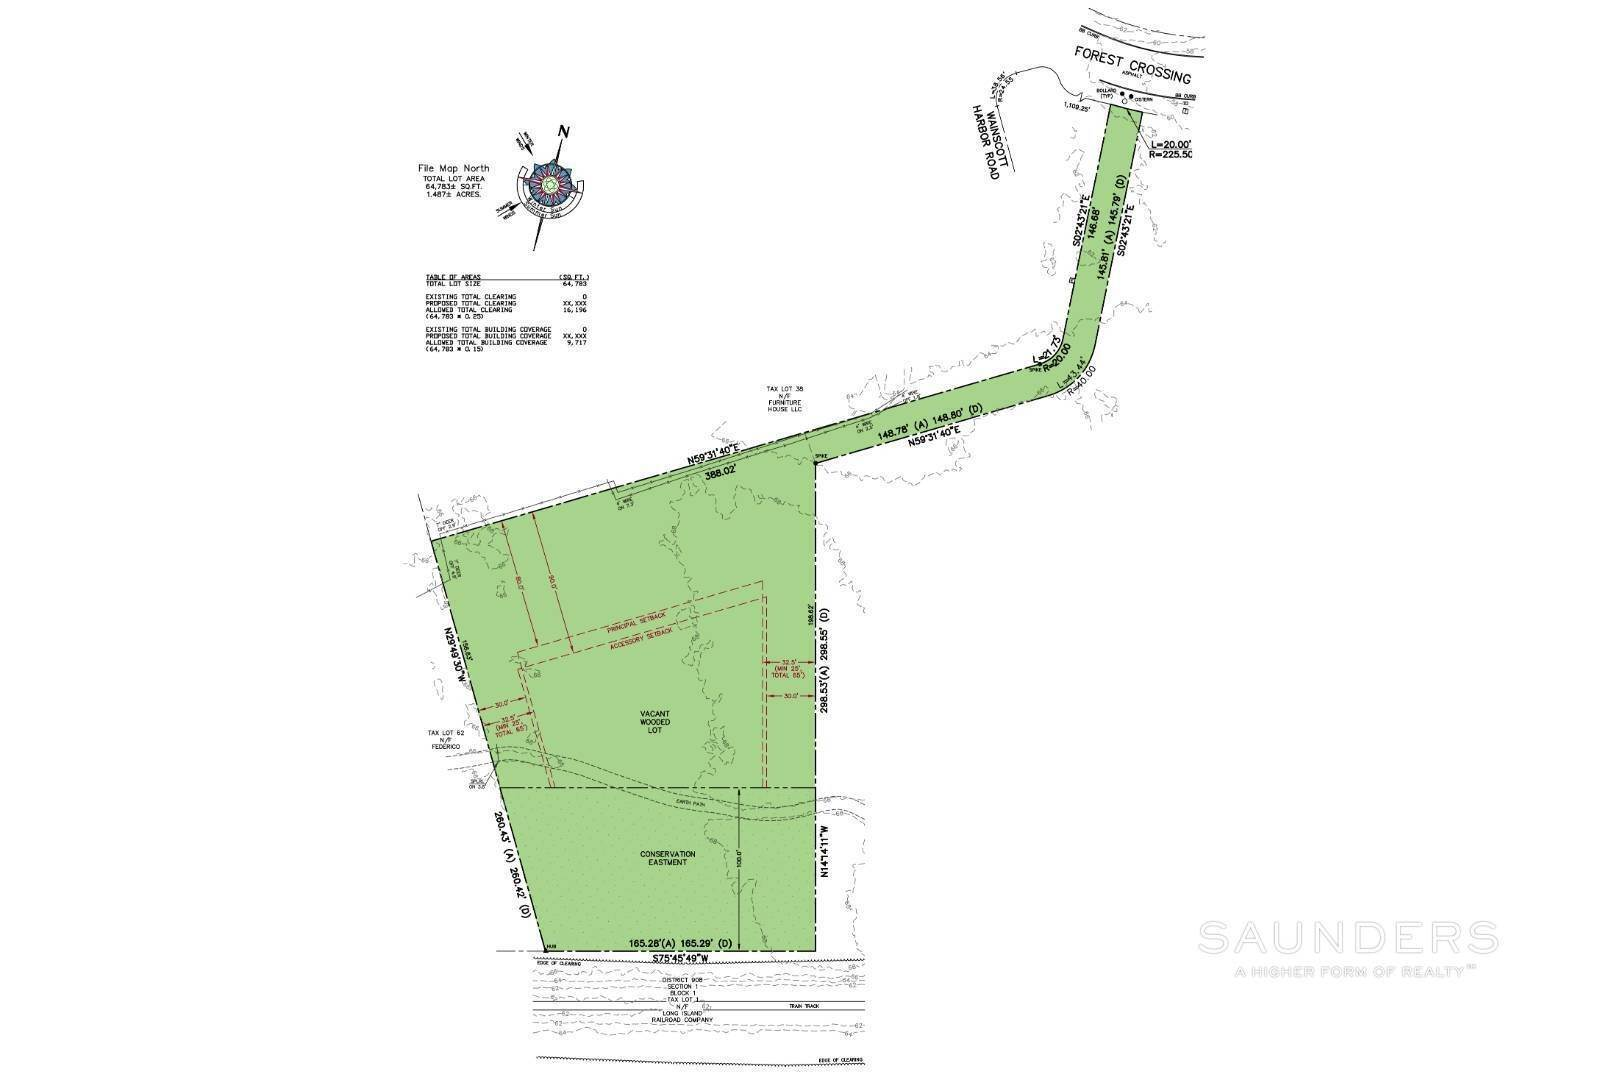 Land for Sale at Sagaponack Vacant Land On Flag Lot 17 Forest Crossing, Sagaponack, Southampton Town, NY 11962